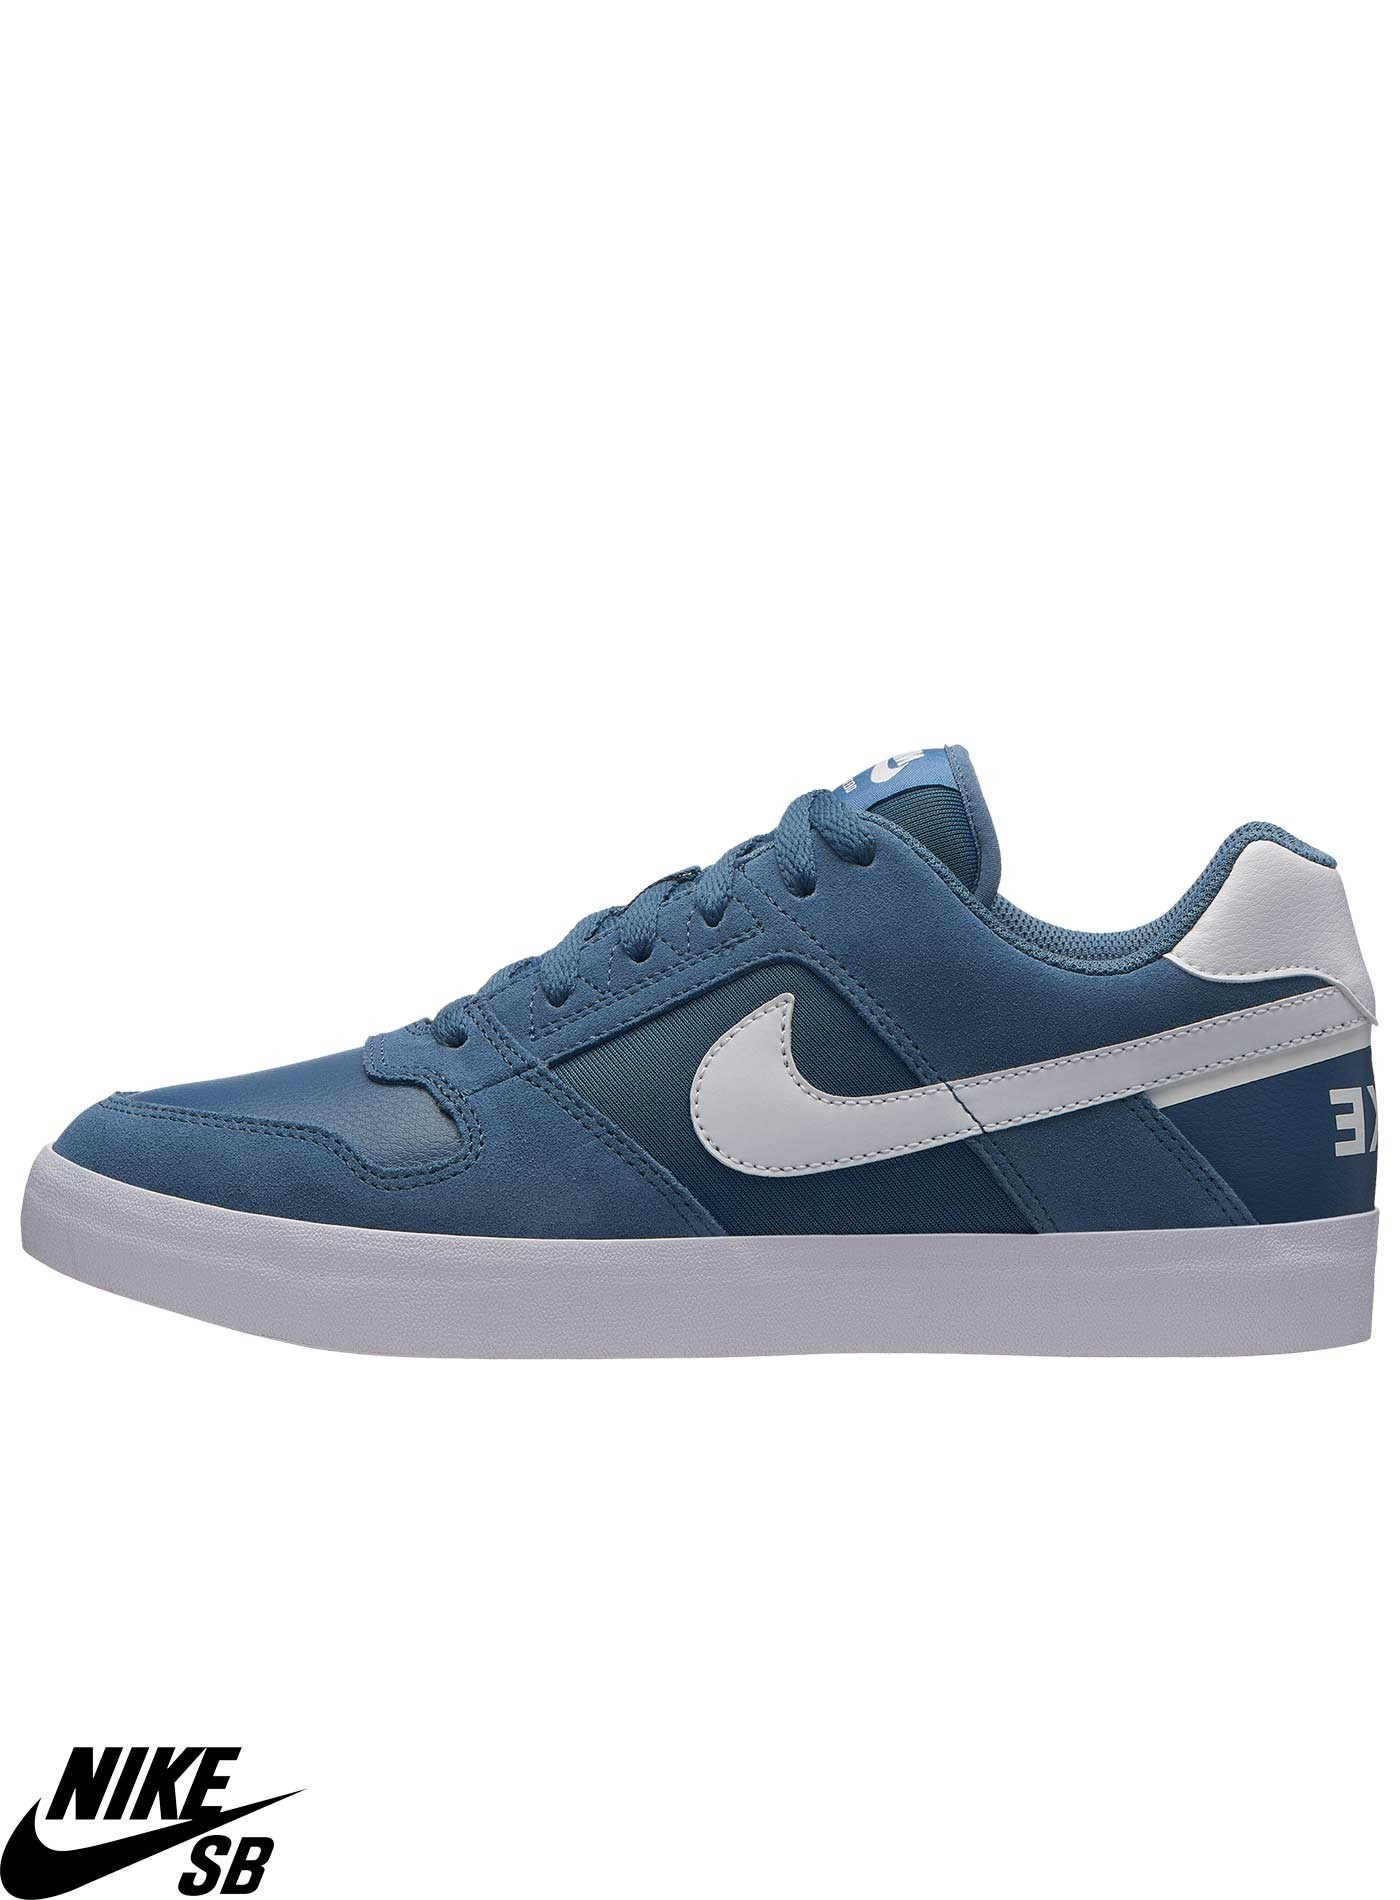 166cd5d35c58 Nike SB Delta Force Vulc Thunderstorm Skate Shoes